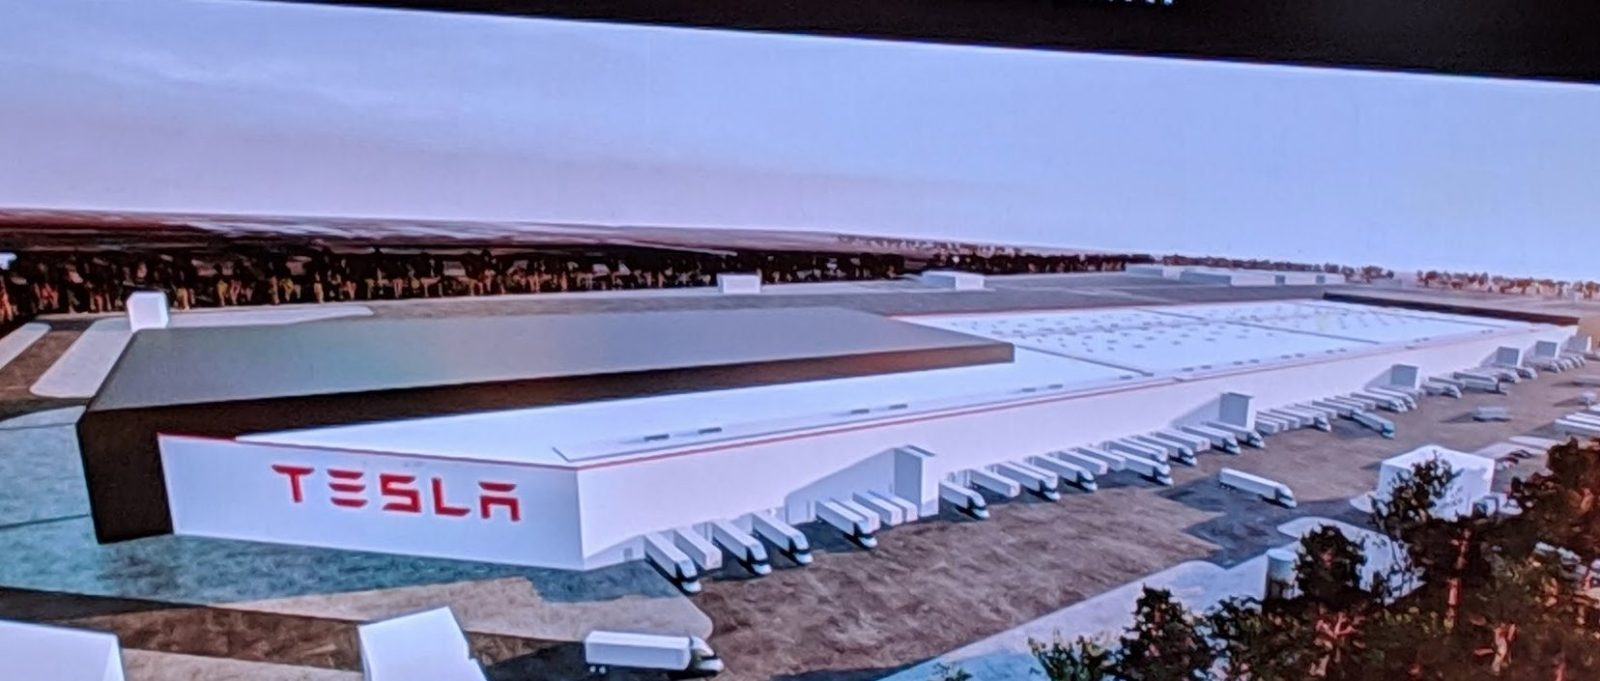 Tesla is showing interest in battery factory project in India, report says